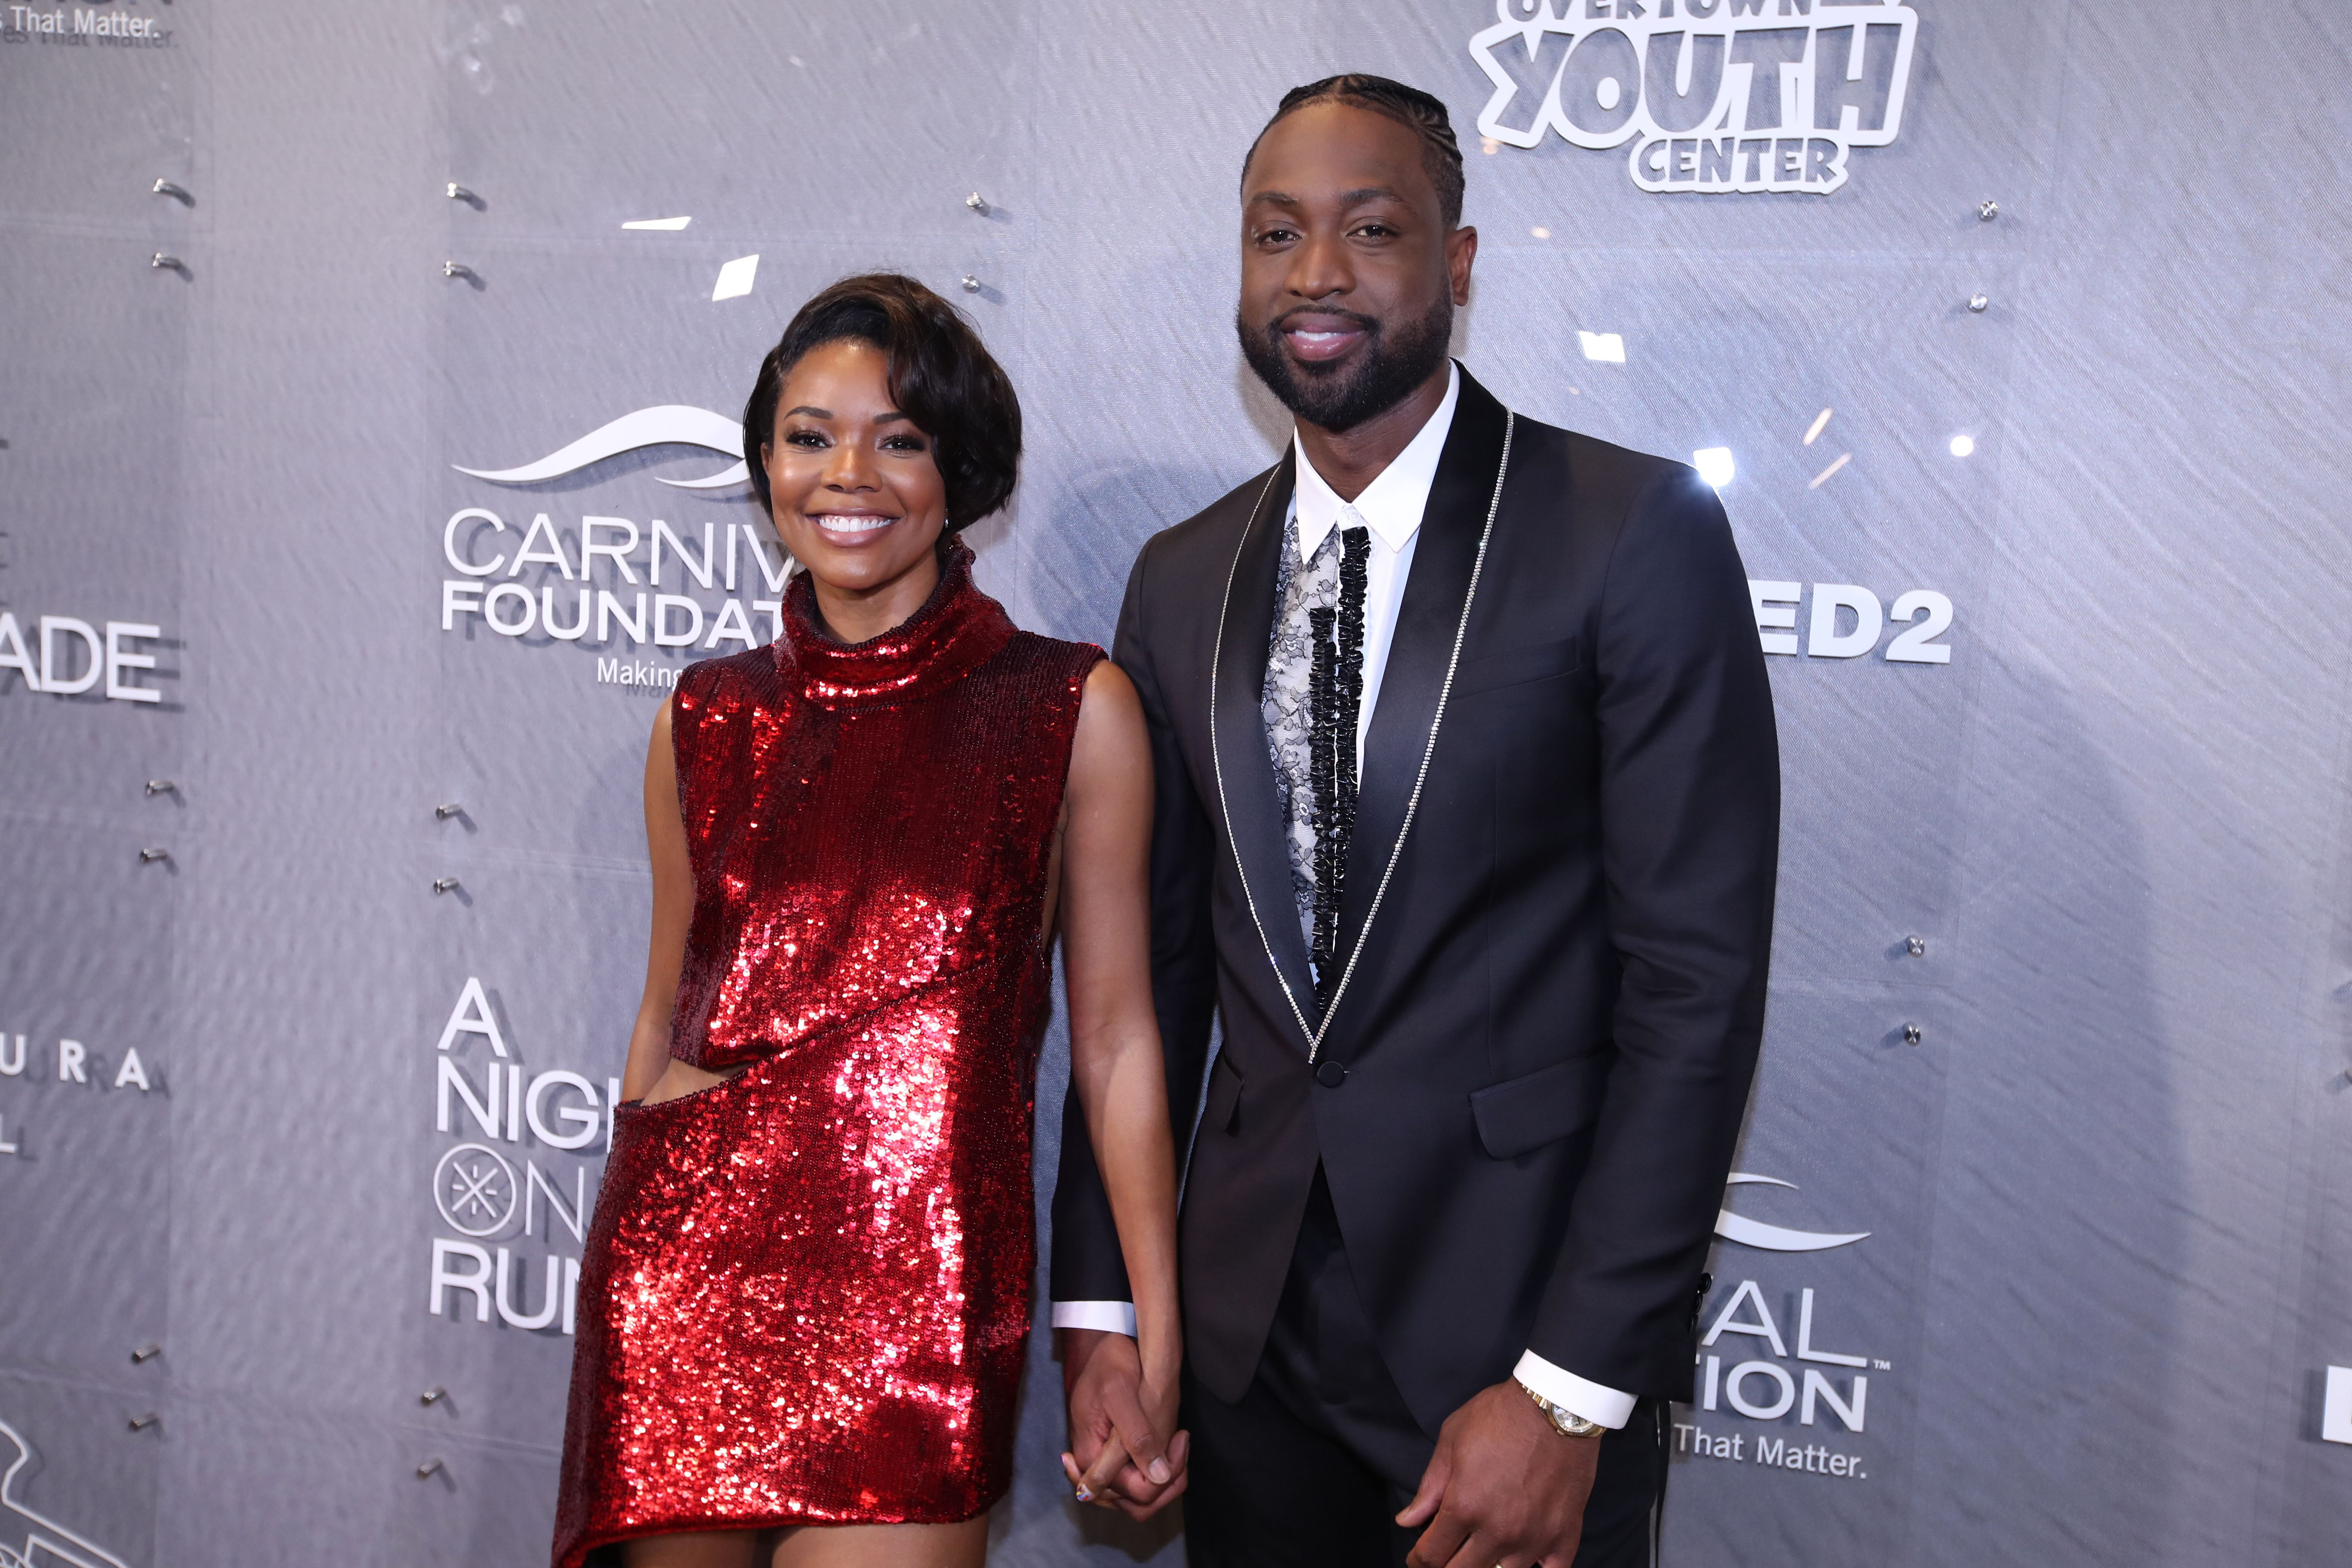 """Gabrielle Union and Dwyane Wade during """"A Night on the RunWade"""" at Level Three on March 16, 2019 in Miami, Florida. 